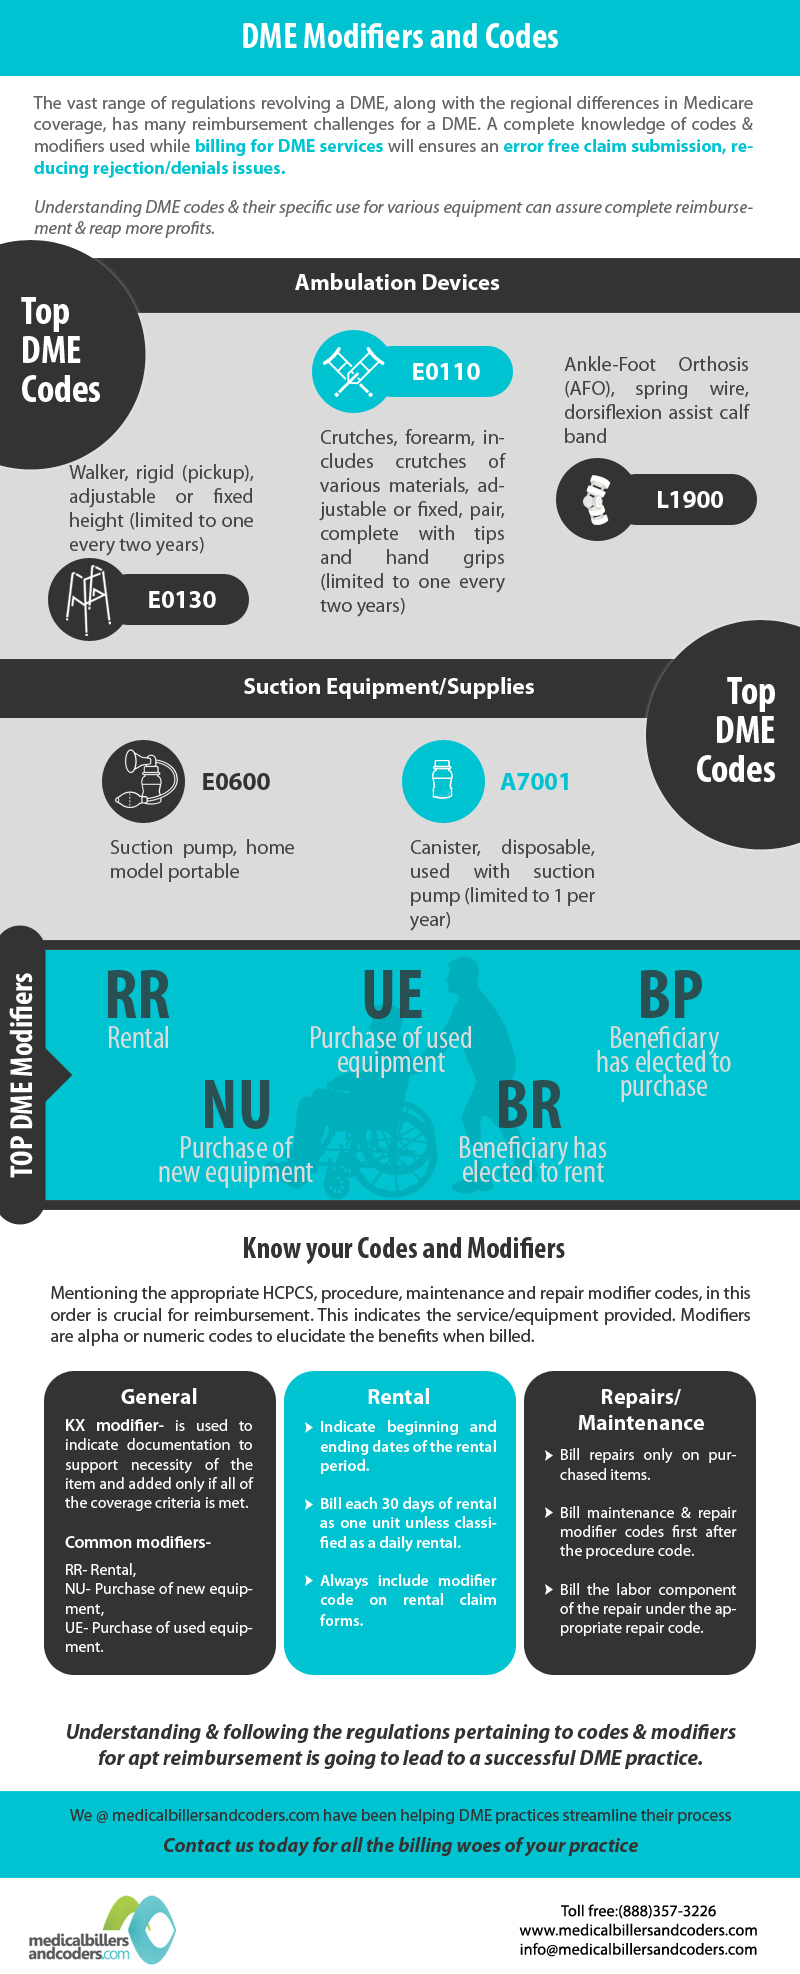 DME Modifiers and Frequently used ICD 10 Codes - Leading